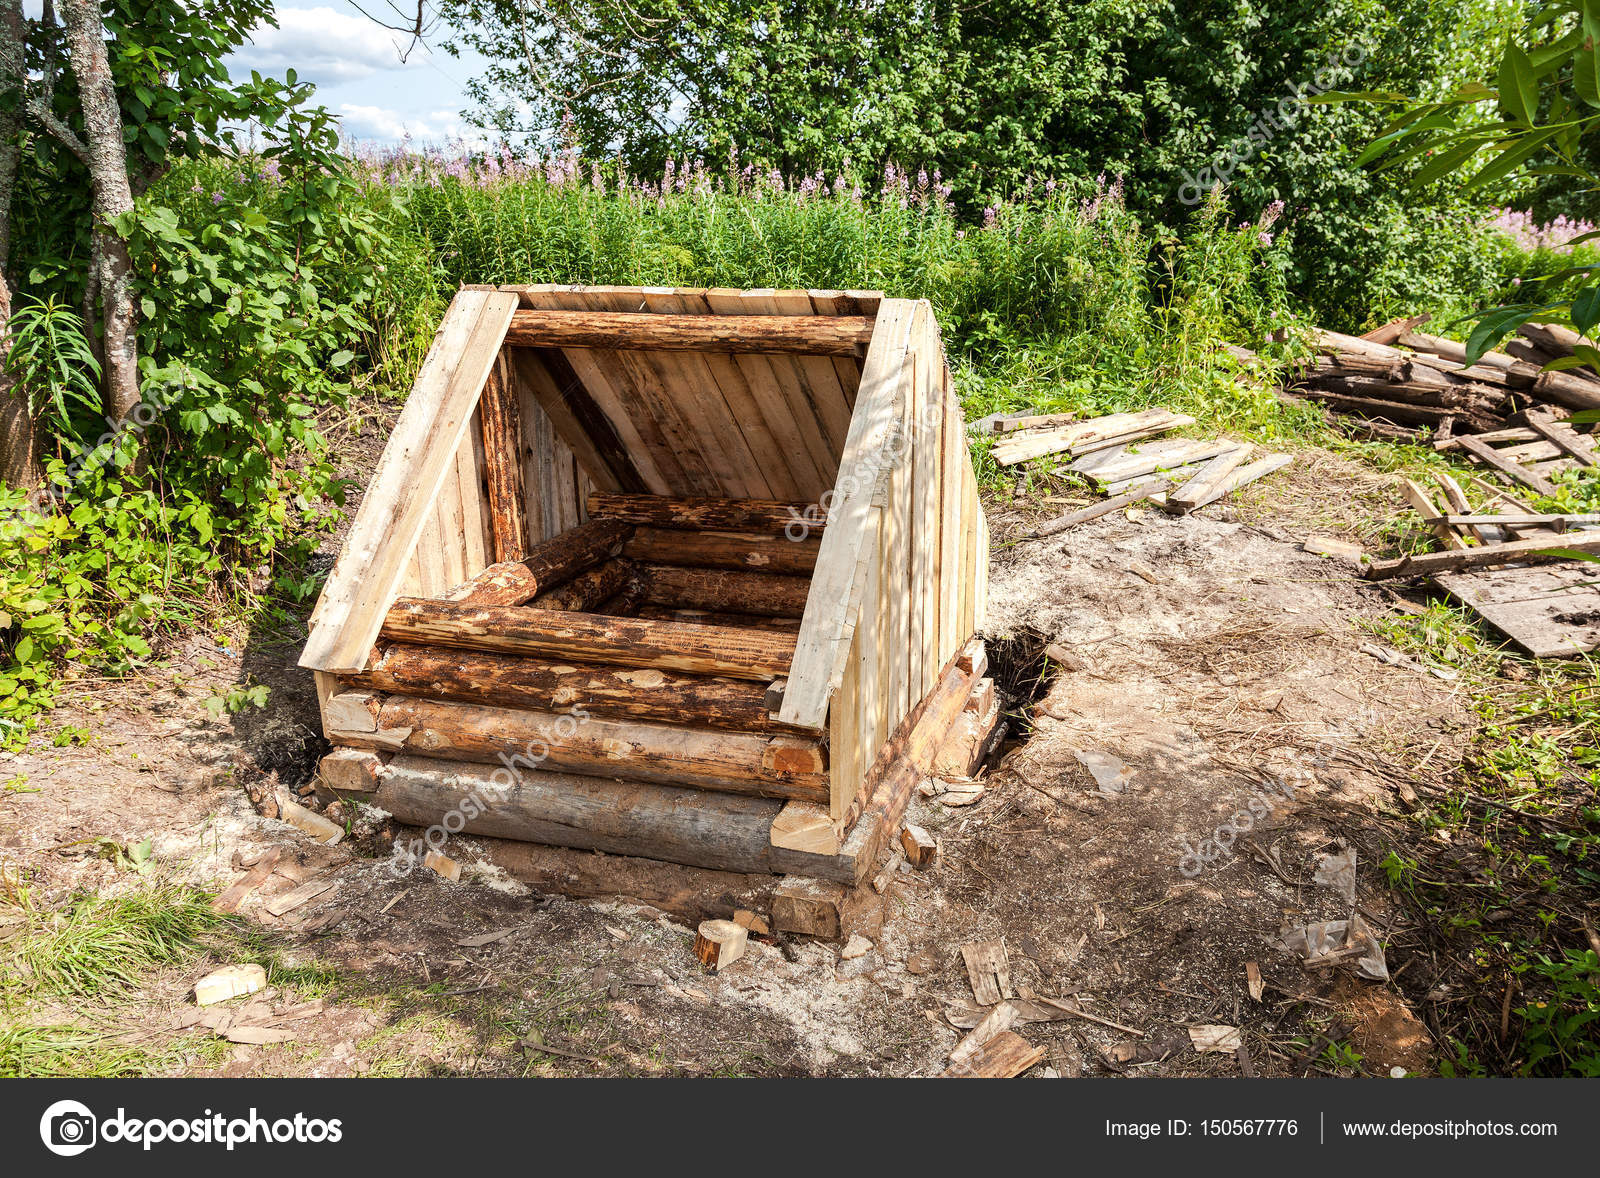 Construction new wooden water well in russian village in summert ...